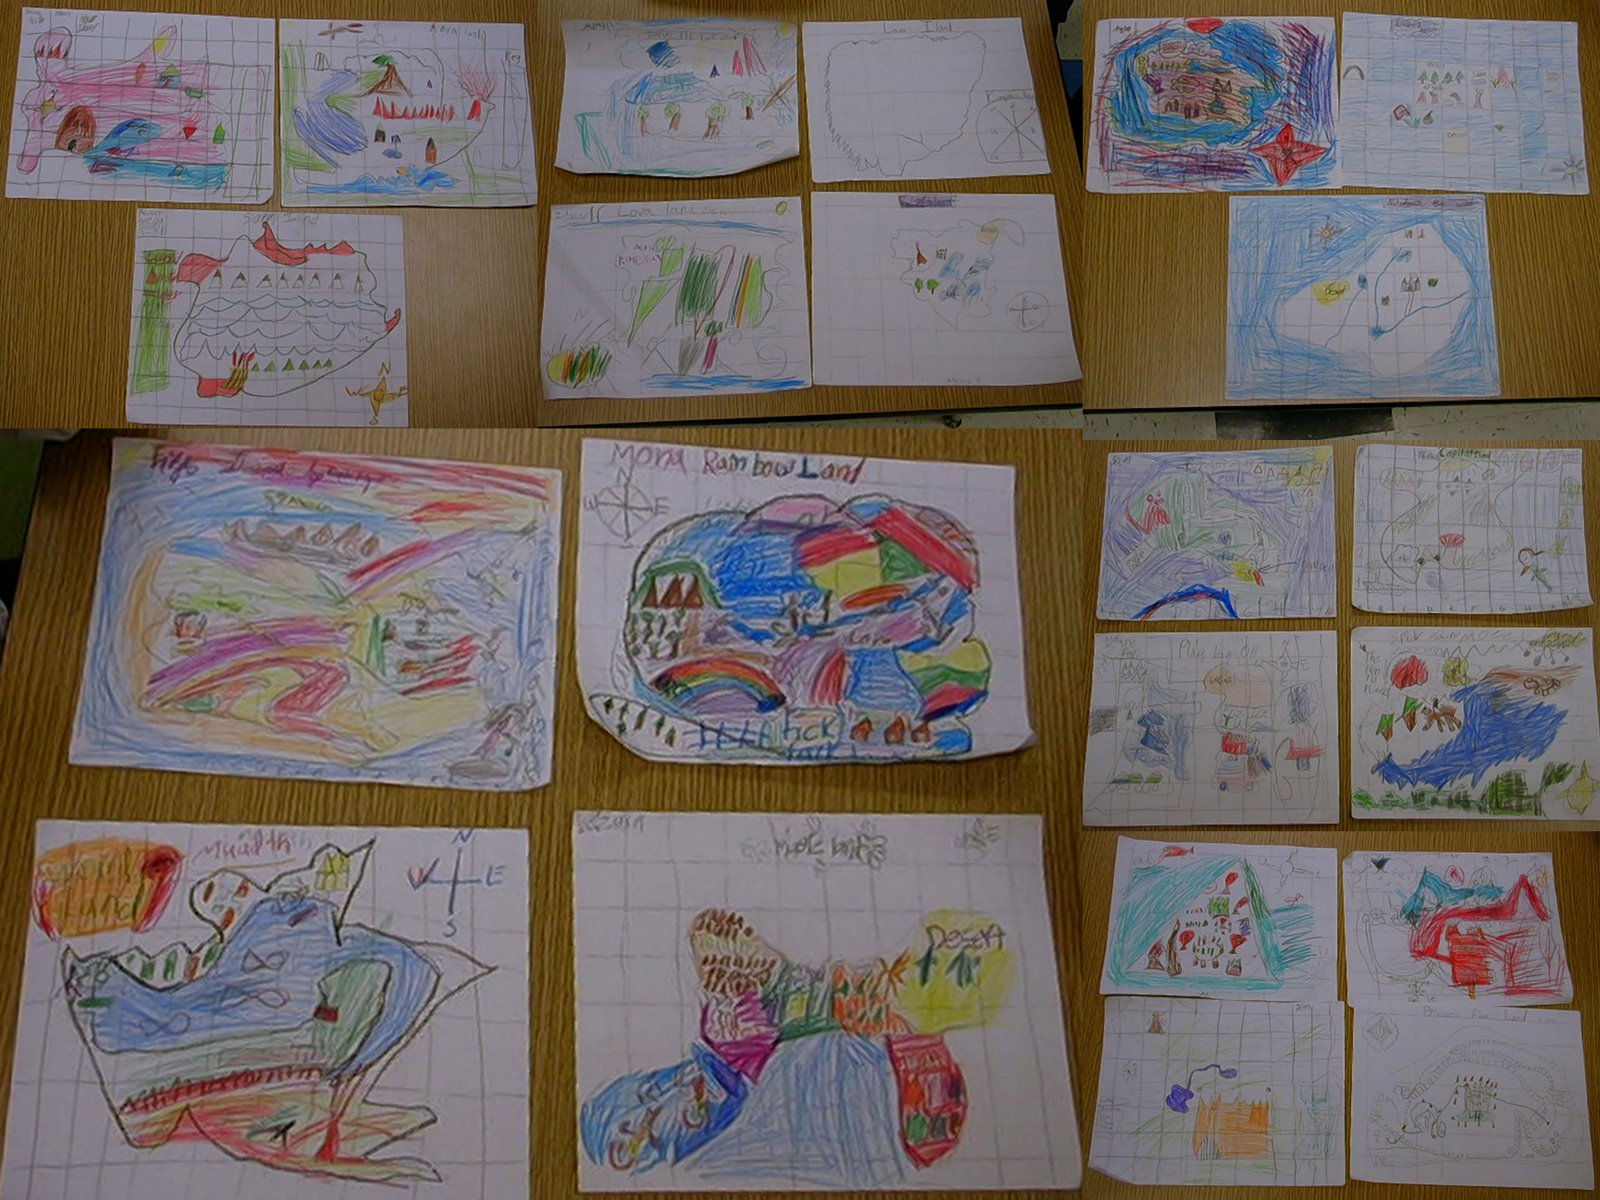 Art   Painting at WBR school  Learning about maps by creating our     The 1st grade looked at the antique maps and then drew thier own map of an  imaginary island  Land forms were not a problem as several included  mountains and